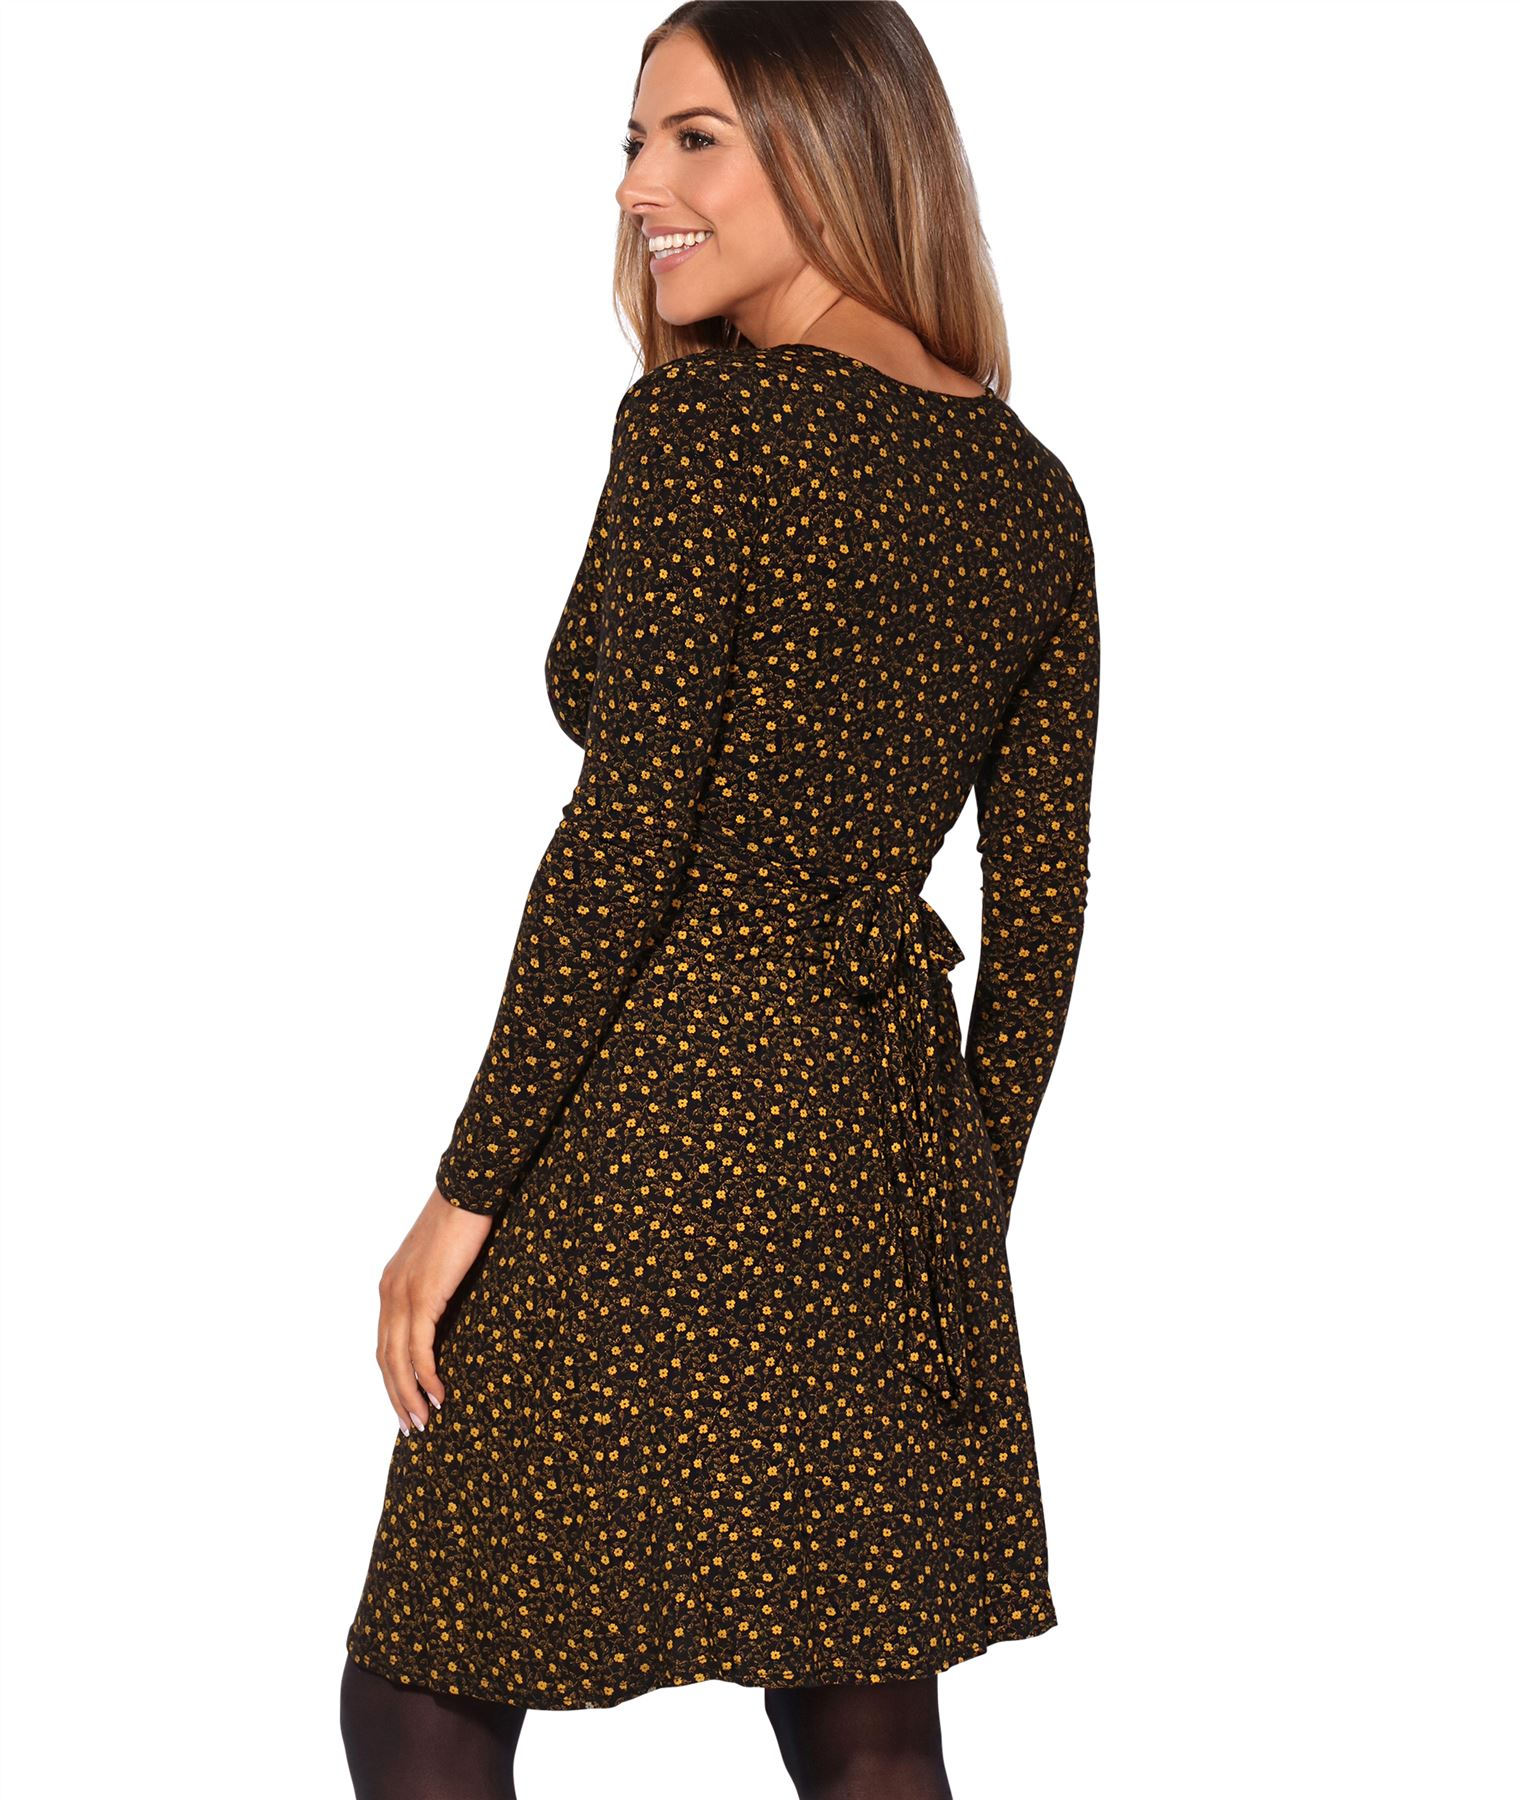 Womens-Ladies-Pattern-Dress-Drape-Print-Stretch-Long-Sleeve-Ruched-Knot-Party thumbnail 4